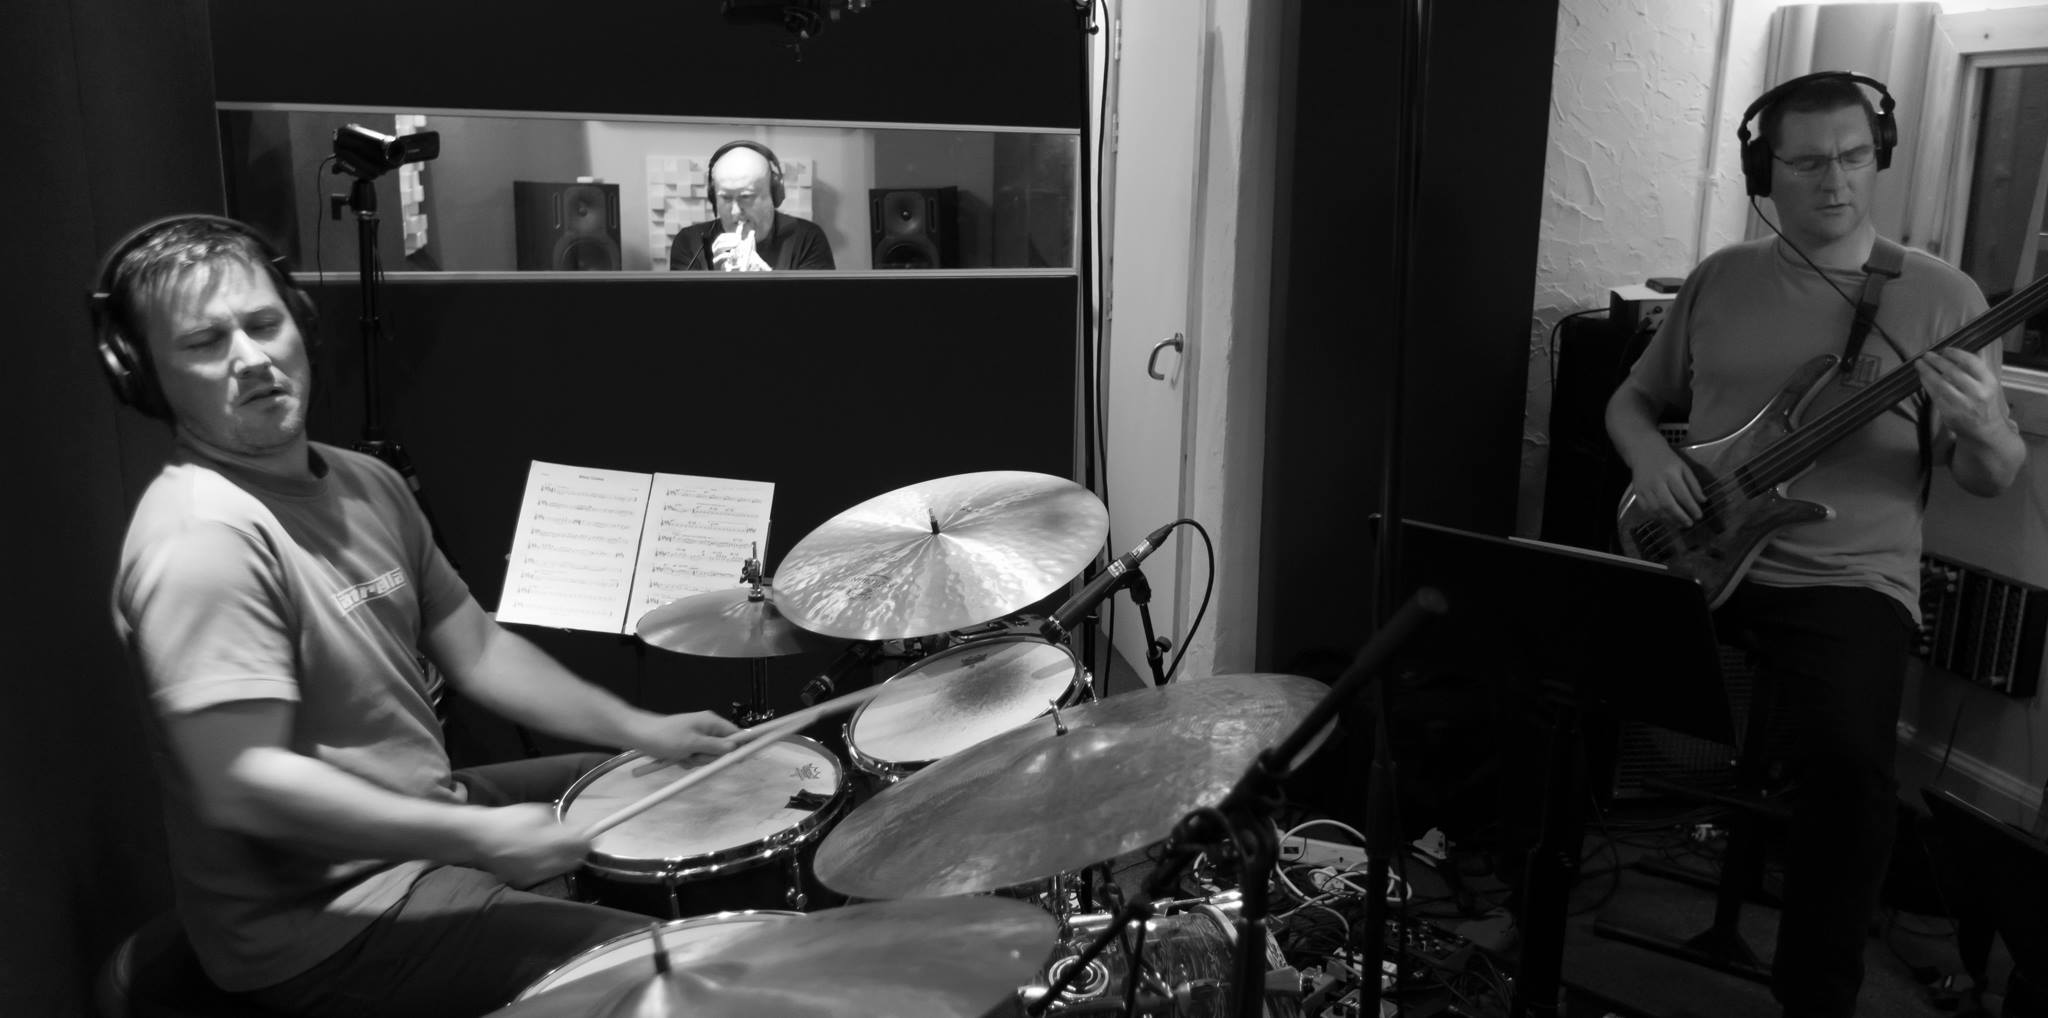 Recording bassist Al Swainger's new album, with Mike Outram - Guitar, Neil Yates - Trumpet and George Cooper - Keys (photo: Guy Harris)